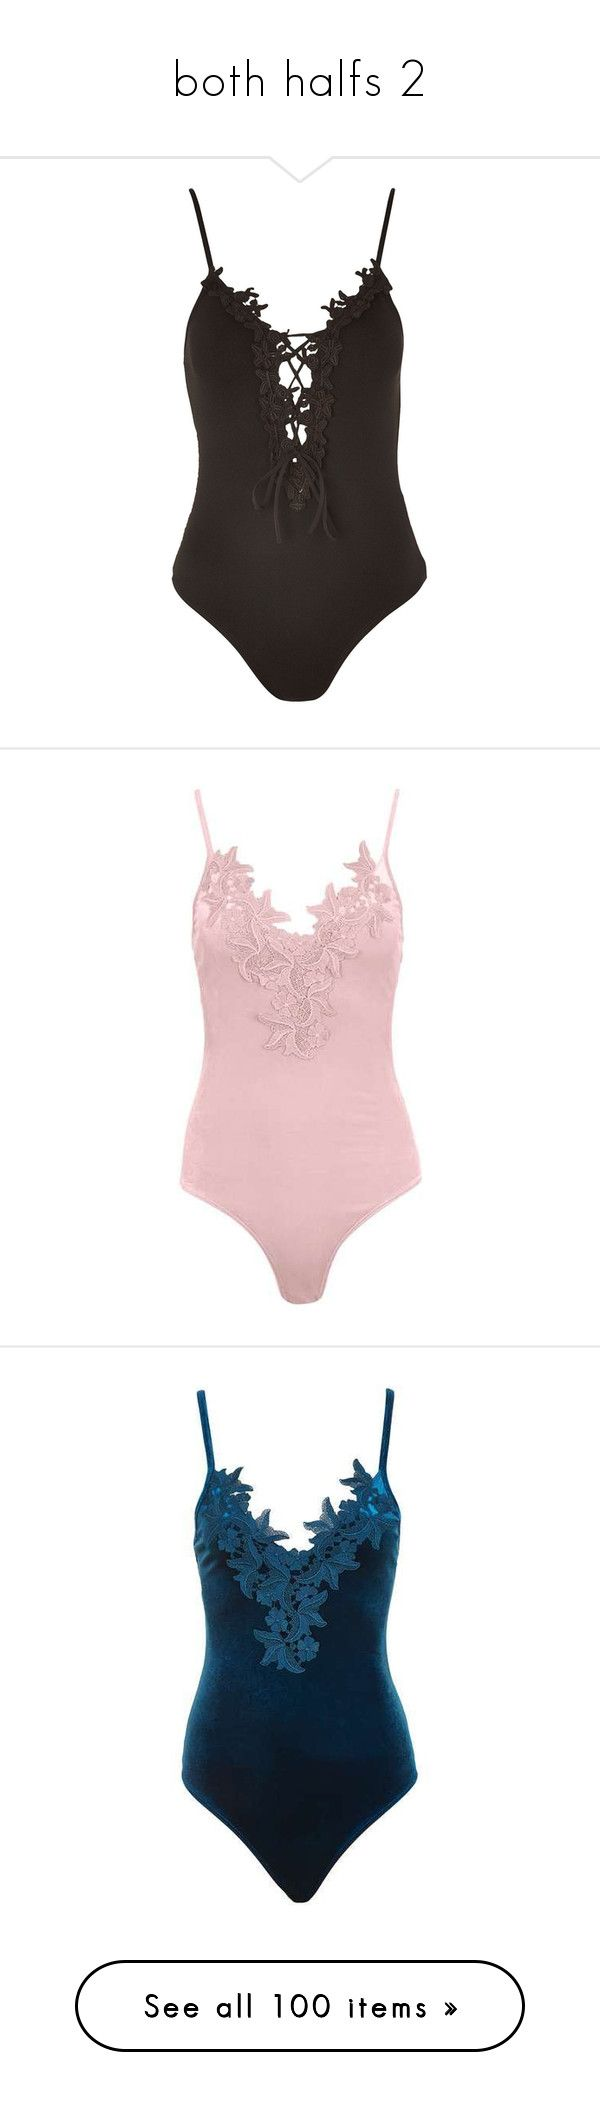 """""""both halfs 2"""" by dramaqueensmilez ❤ liked on Polyvore featuring intimates, shapewear, black, body, bodysuits, topshop, bodysuit, tops, swimwear and one-piece swimsuits"""